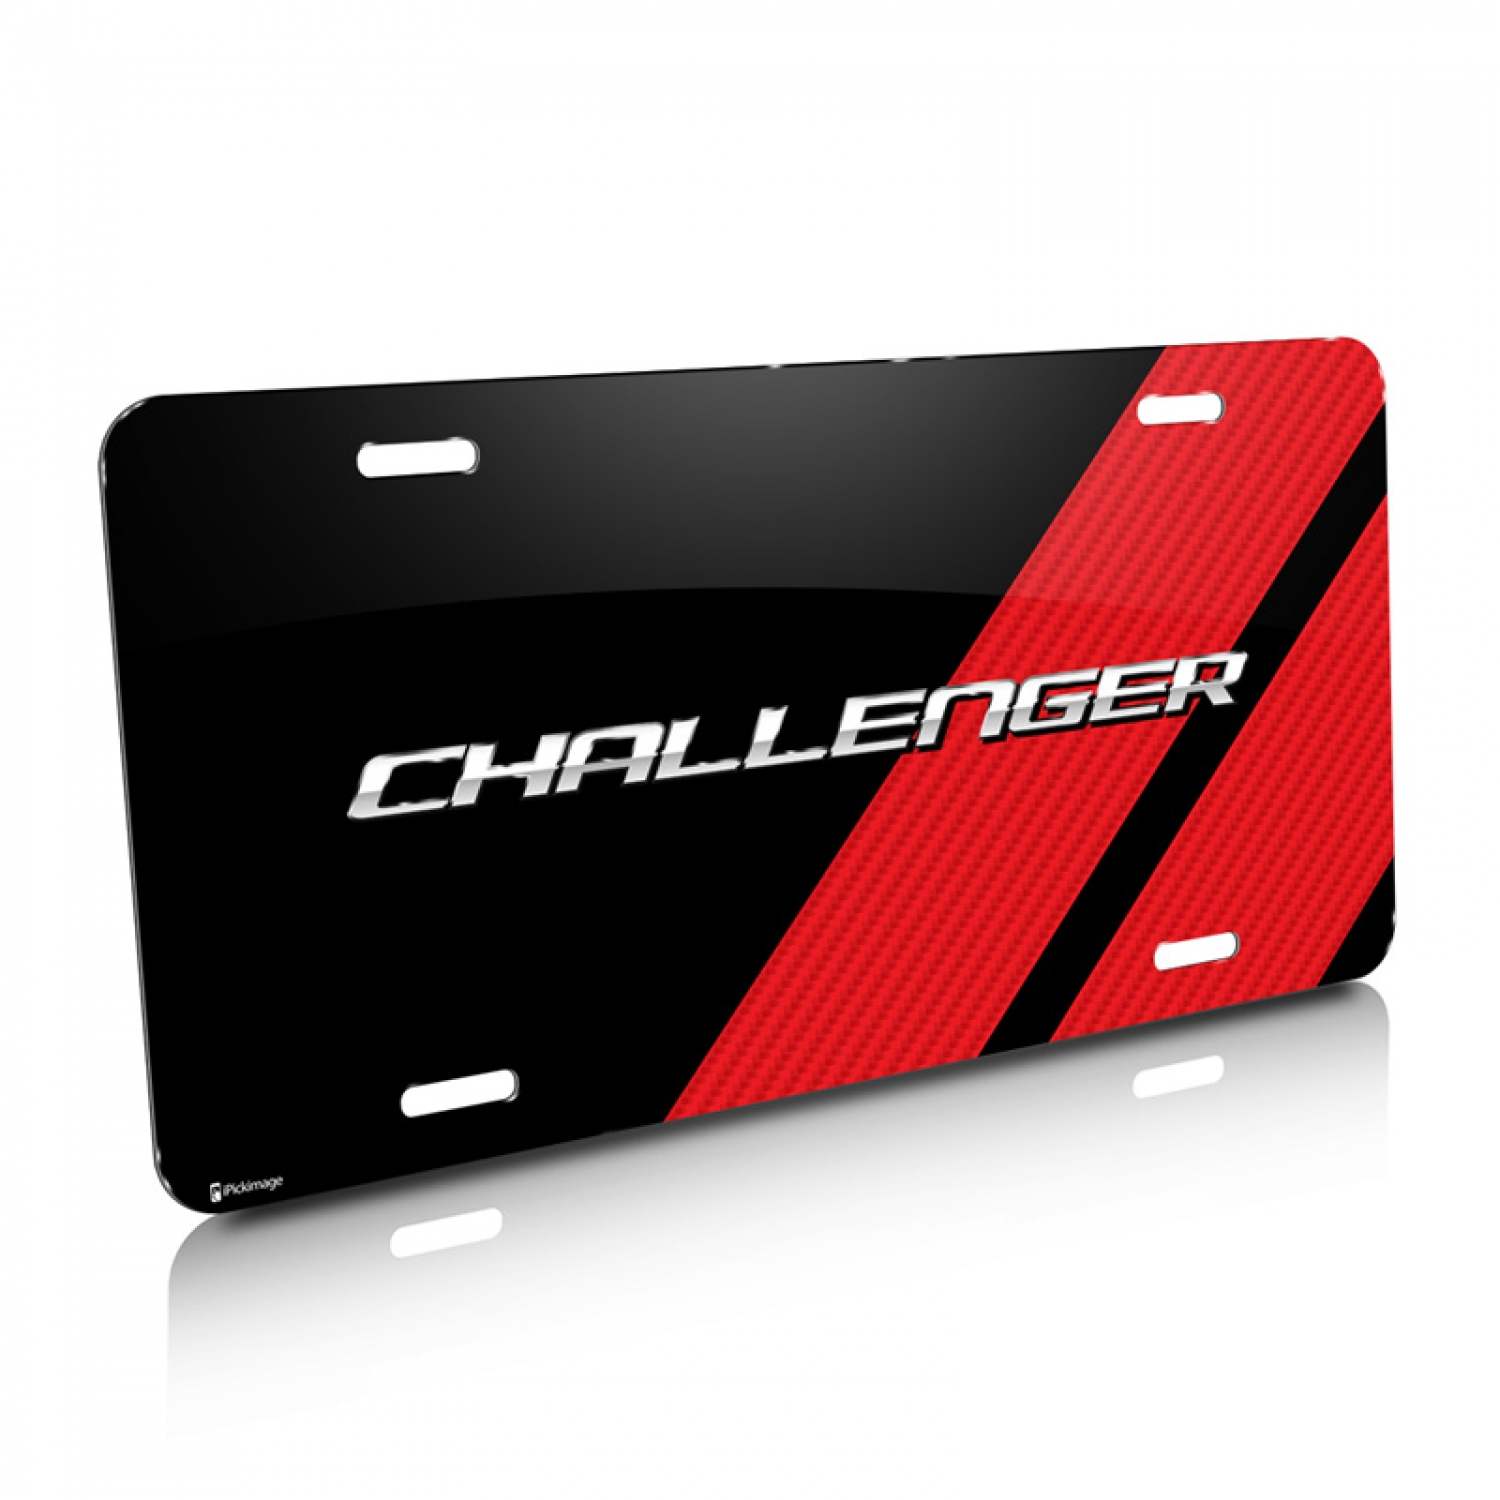 Dodge Challenger Carbon Fiber Look Red Stripe Graphic Aluminum License Plate